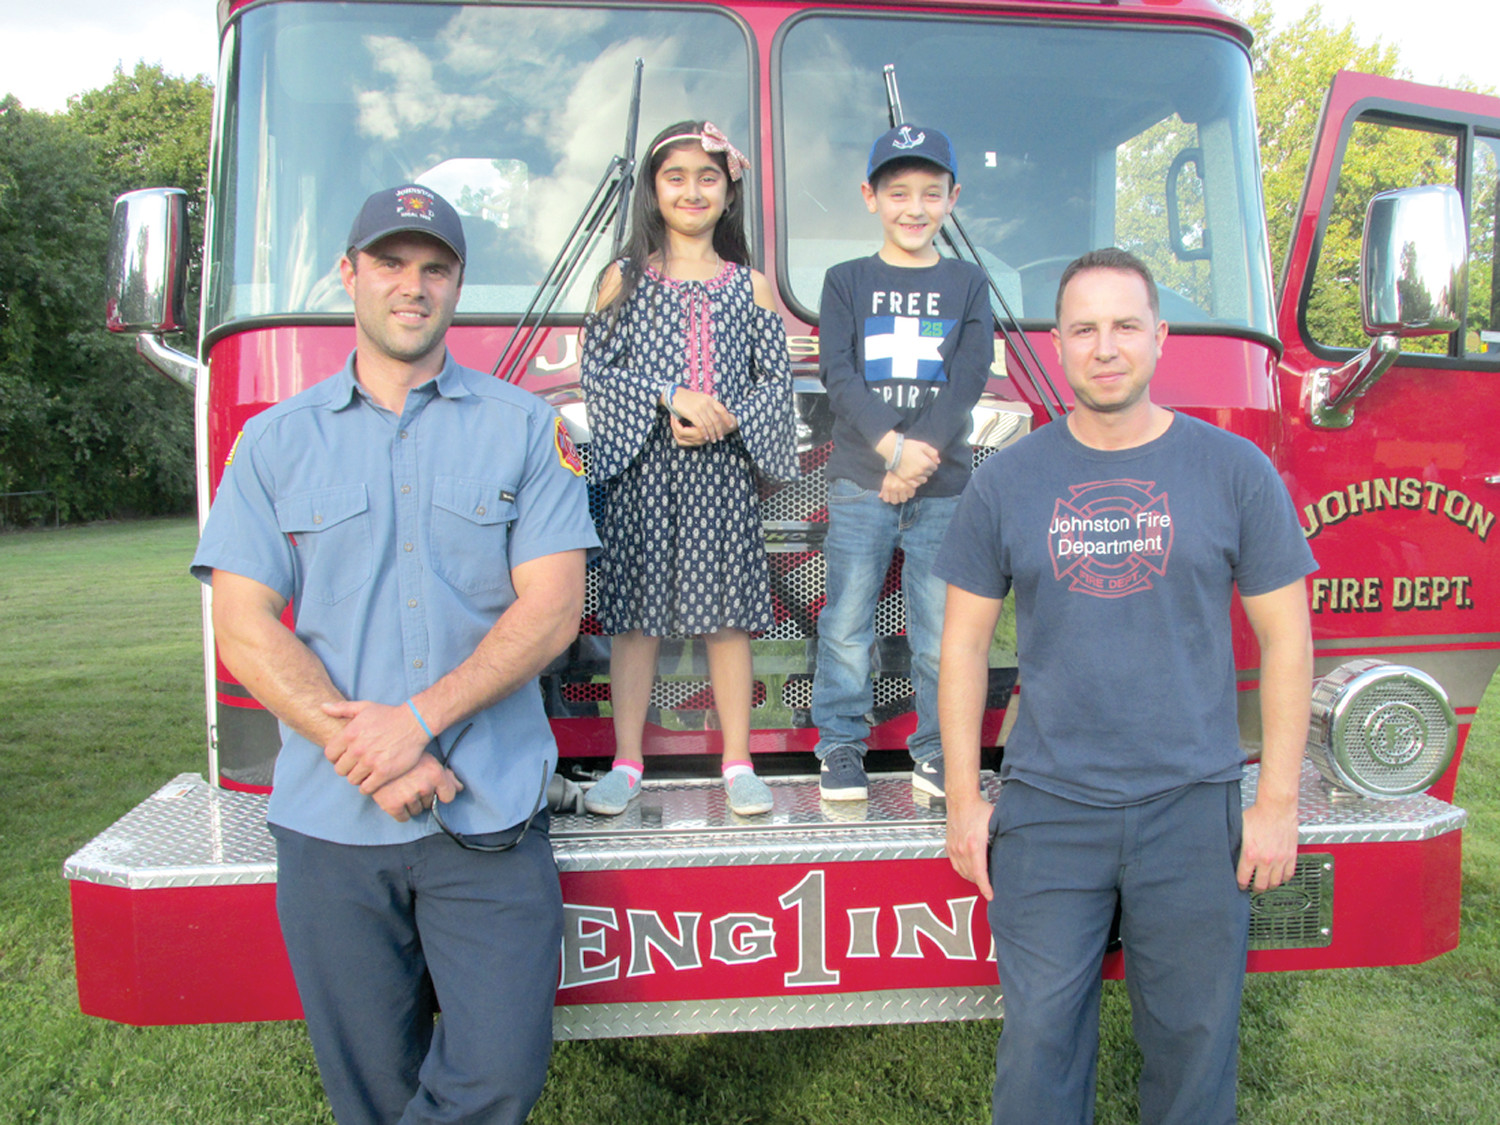 DELIGHTFUL DUTY: Johnston Firefighters like Justin Petrin (left) and Ray Cianci made last Saturday's Touch-A-Truck event special for youngsters like Samaira Dhamija and Flynn Merlino who are all smiles while being photographed by their parents at St. Rocco's School.